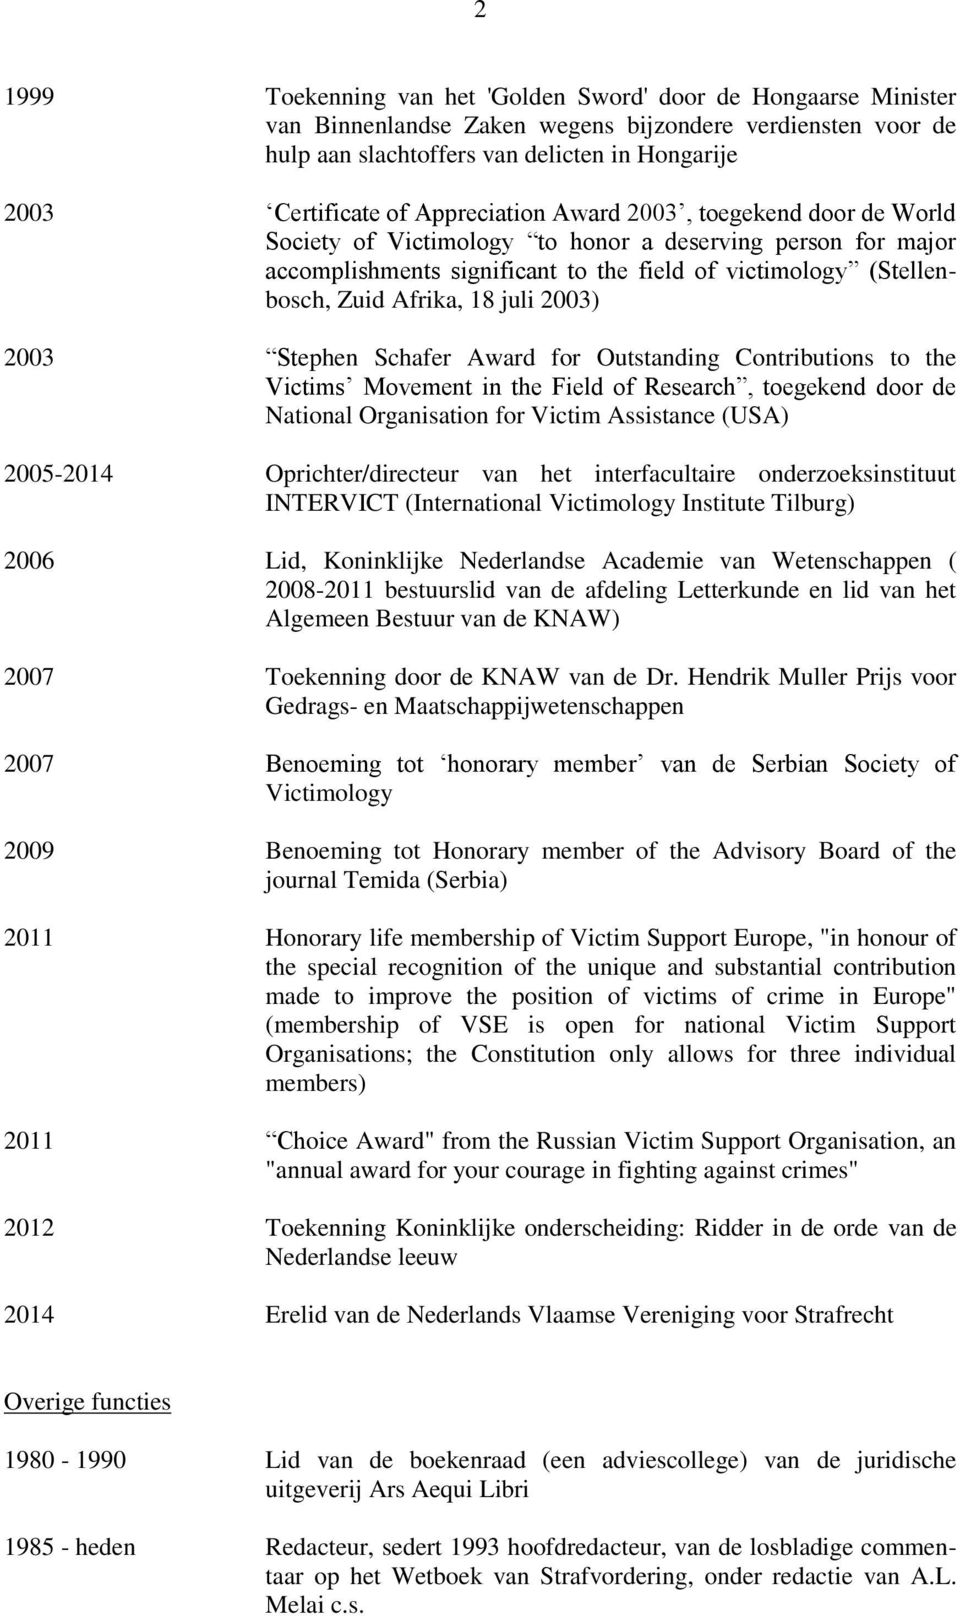 juli 2003) 2003 Stephen Schafer Award for Outstanding Contributions to the Victims Movement in the Field of Research, toegekend door de National Organisation for Victim Assistance (USA) 2005-2014